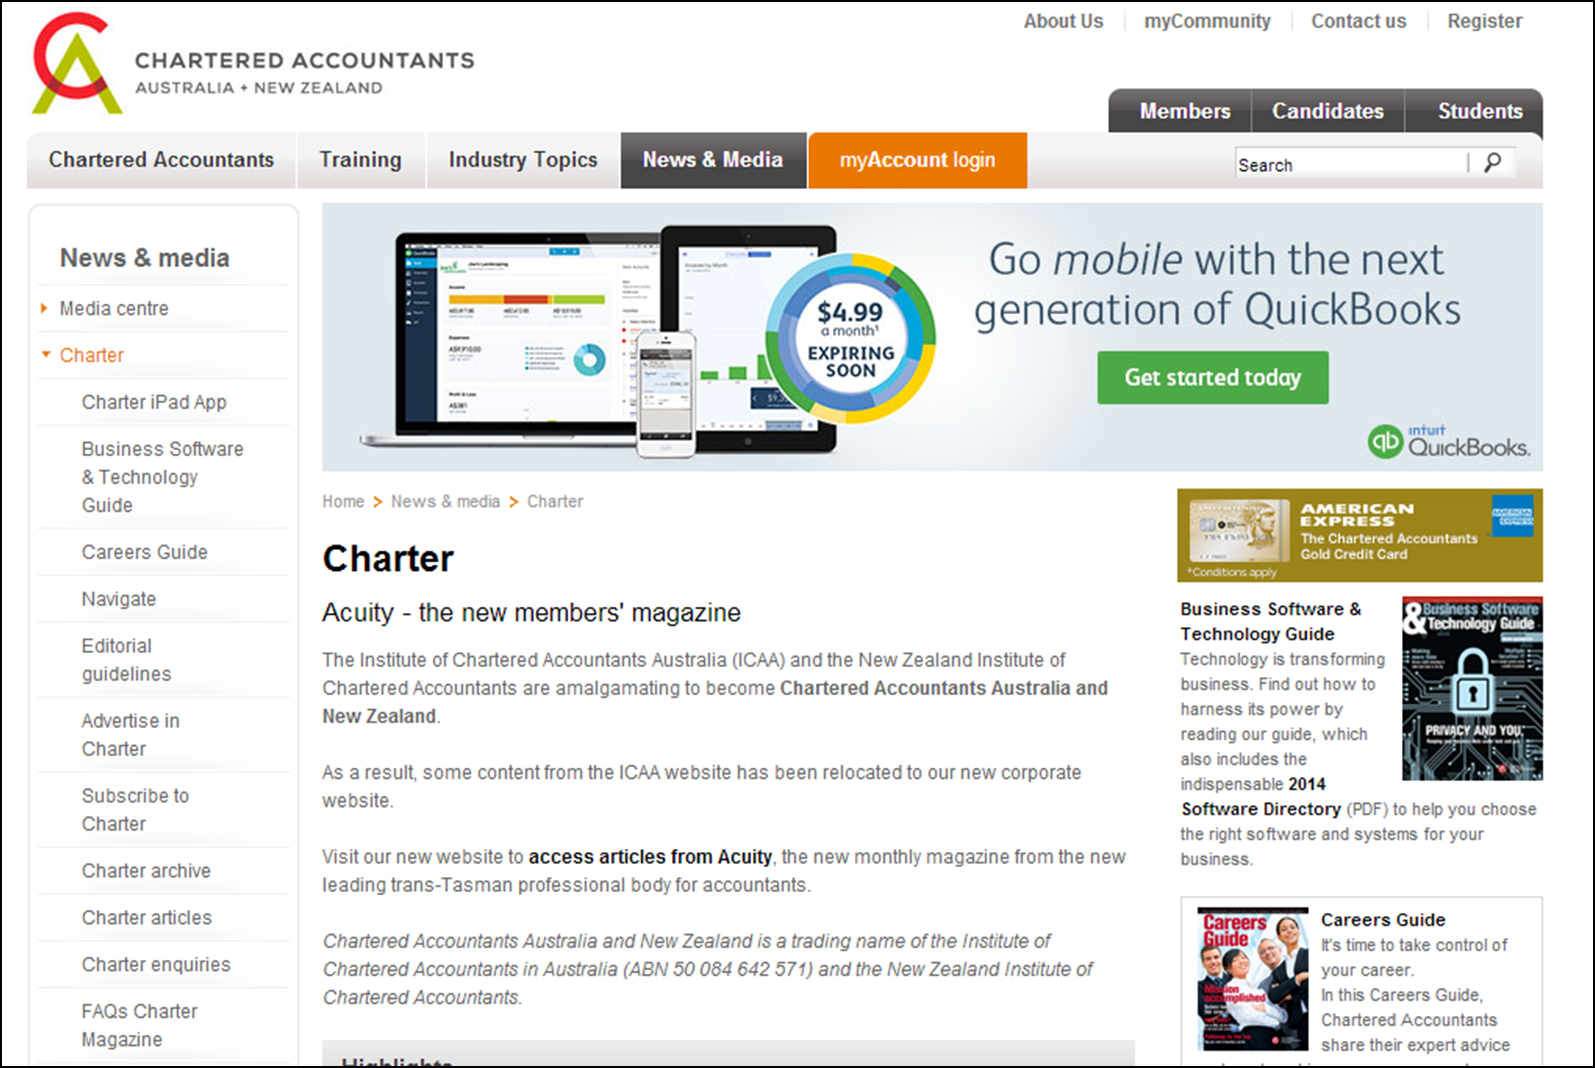 chartered accountants information